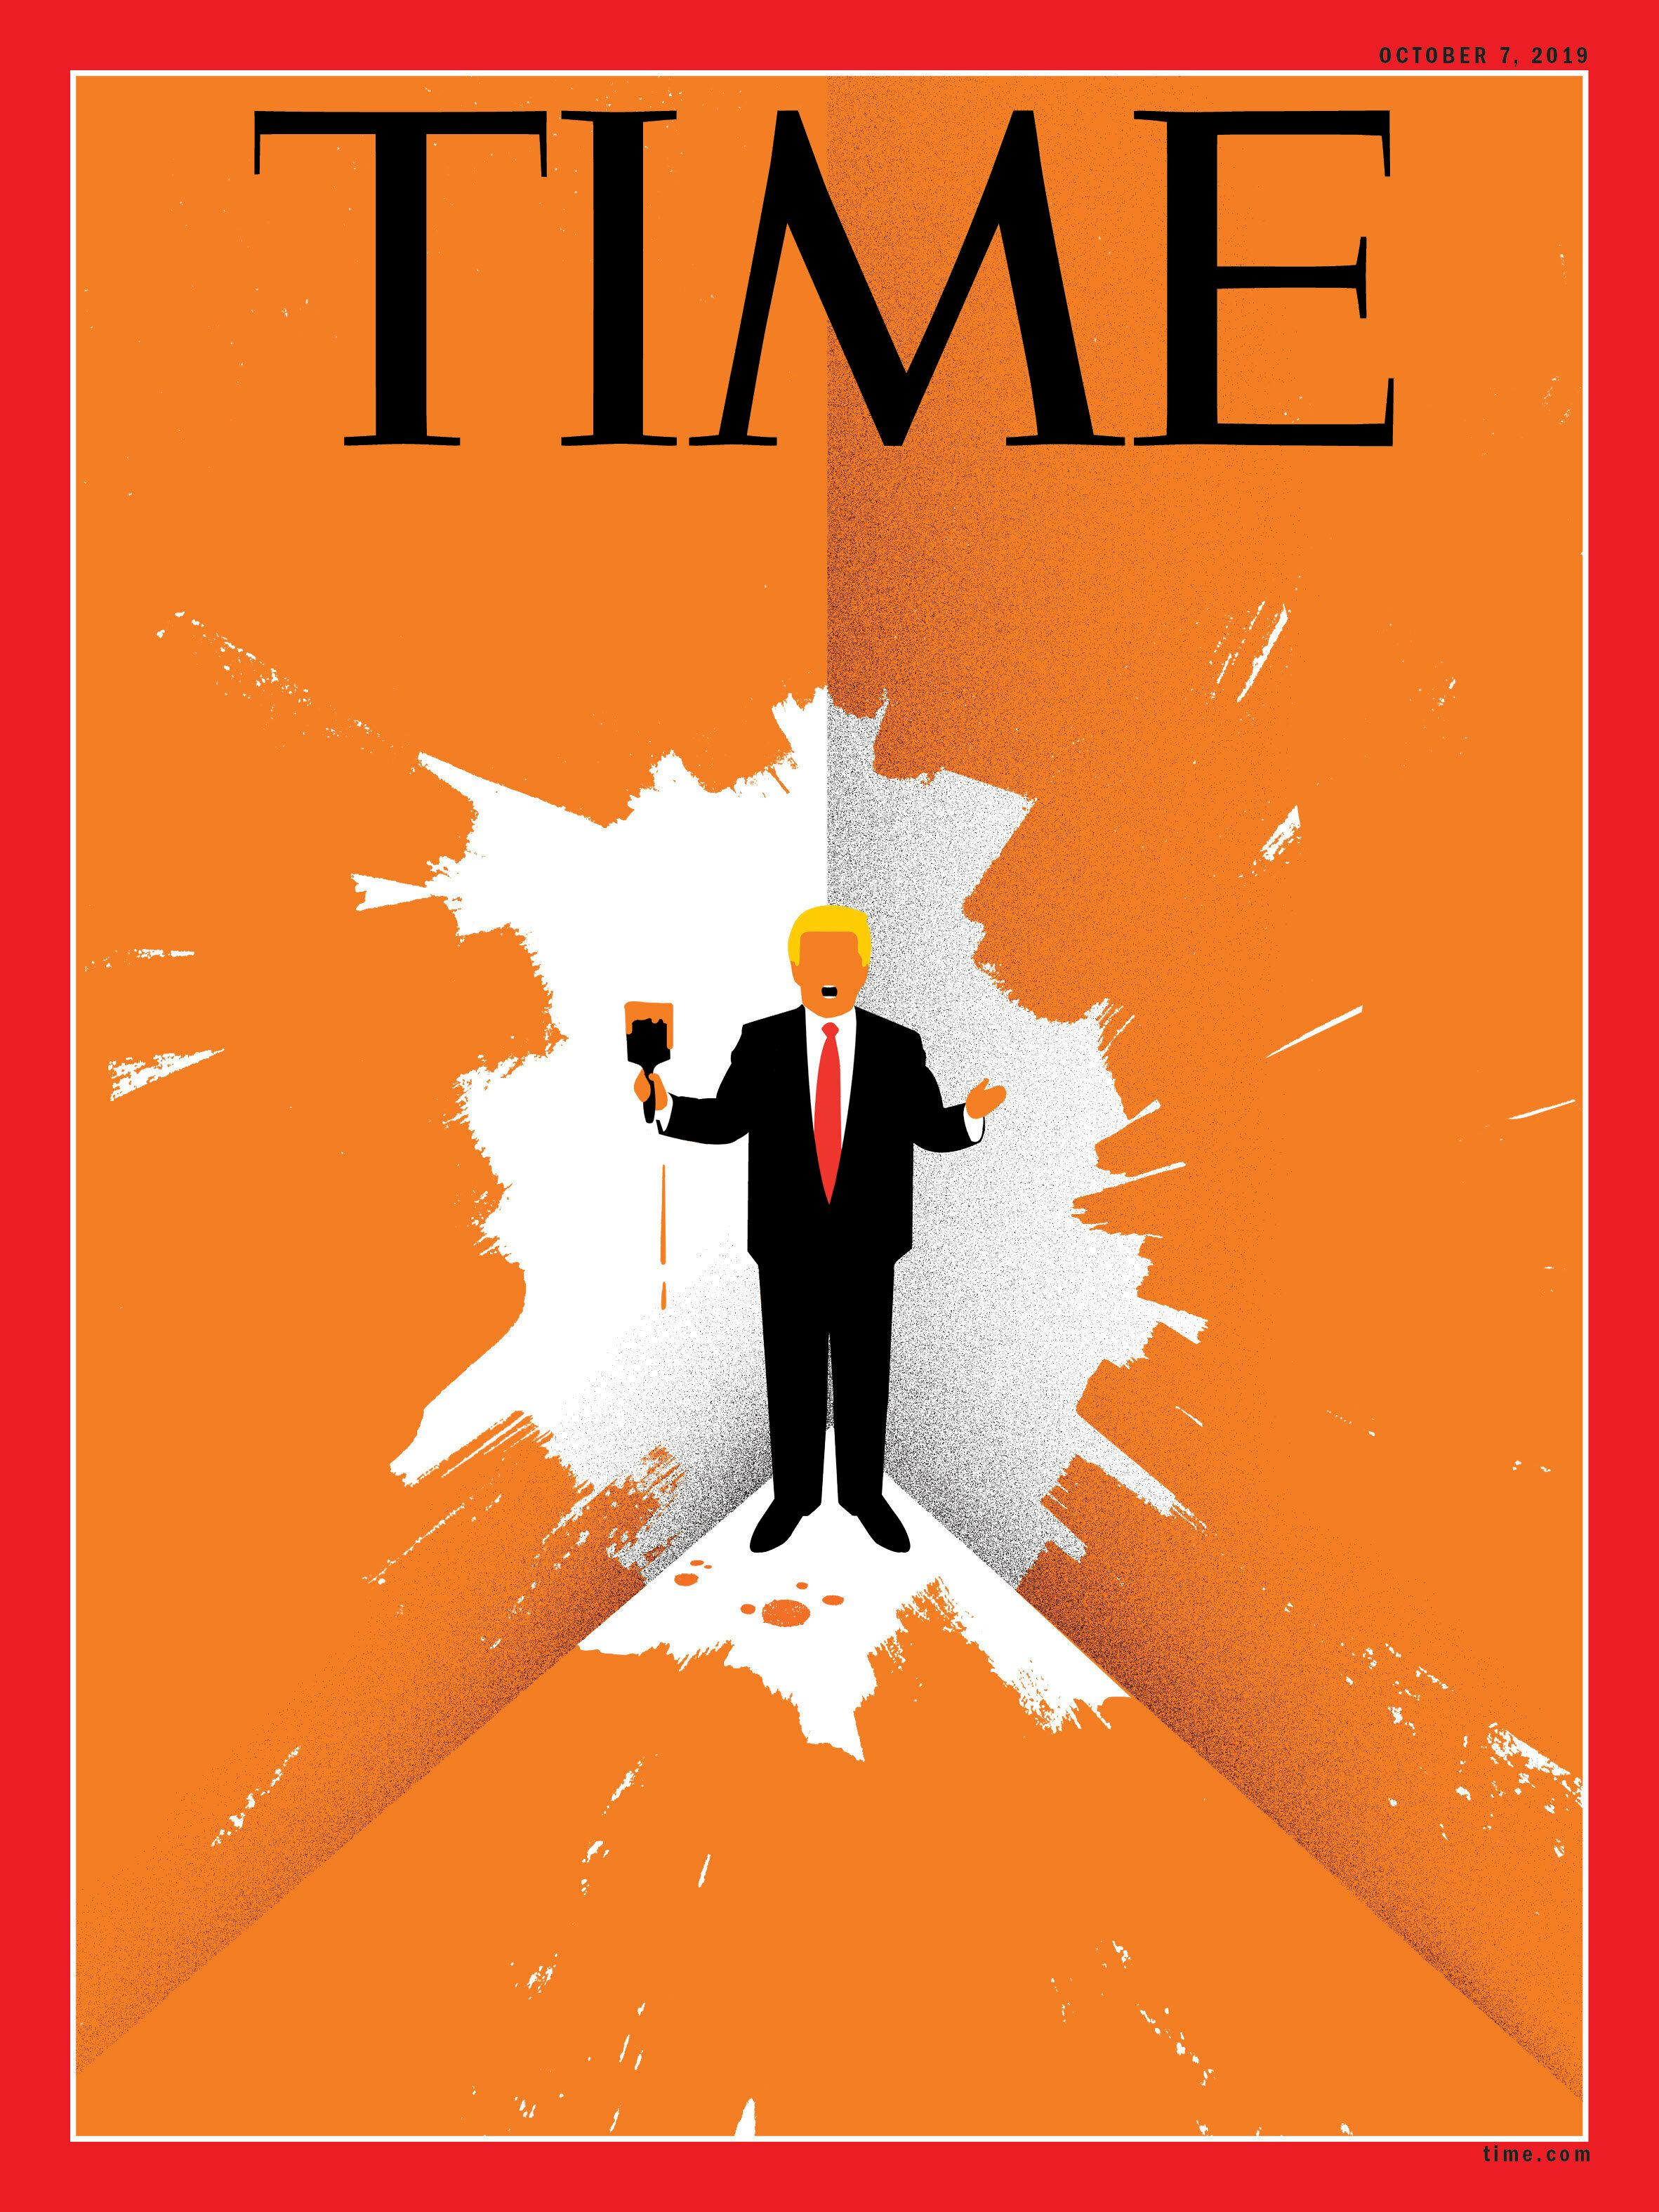 President Donald Trump paints himself into a corner on the cover of the Oct. 7 issue of Time magazine.